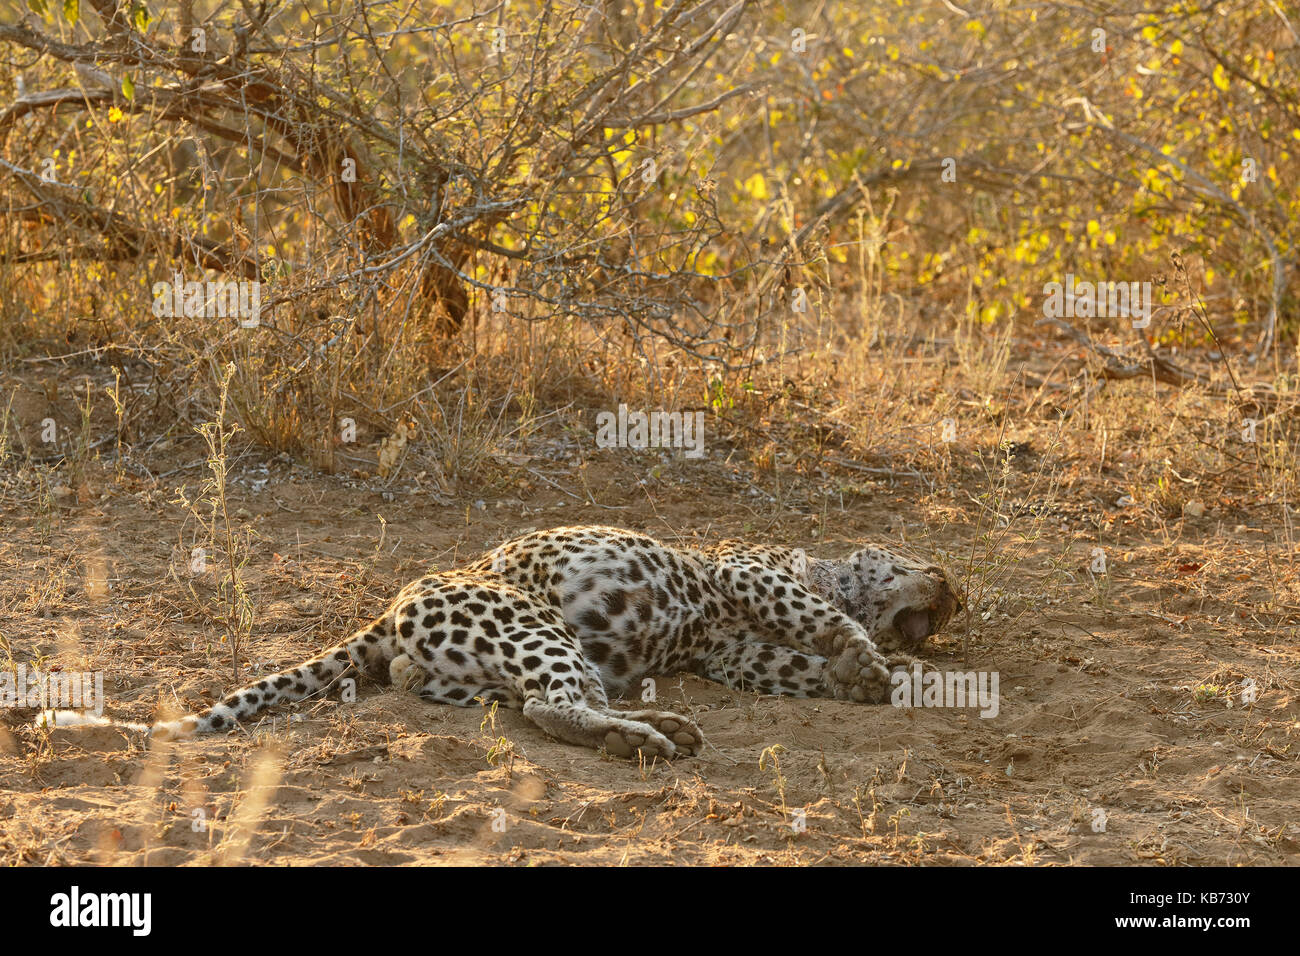 The body of a dead Leopard (Panthera pardus) probaly killed by another leopard or lions, South Africa, Mpumalanga, - Stock Image